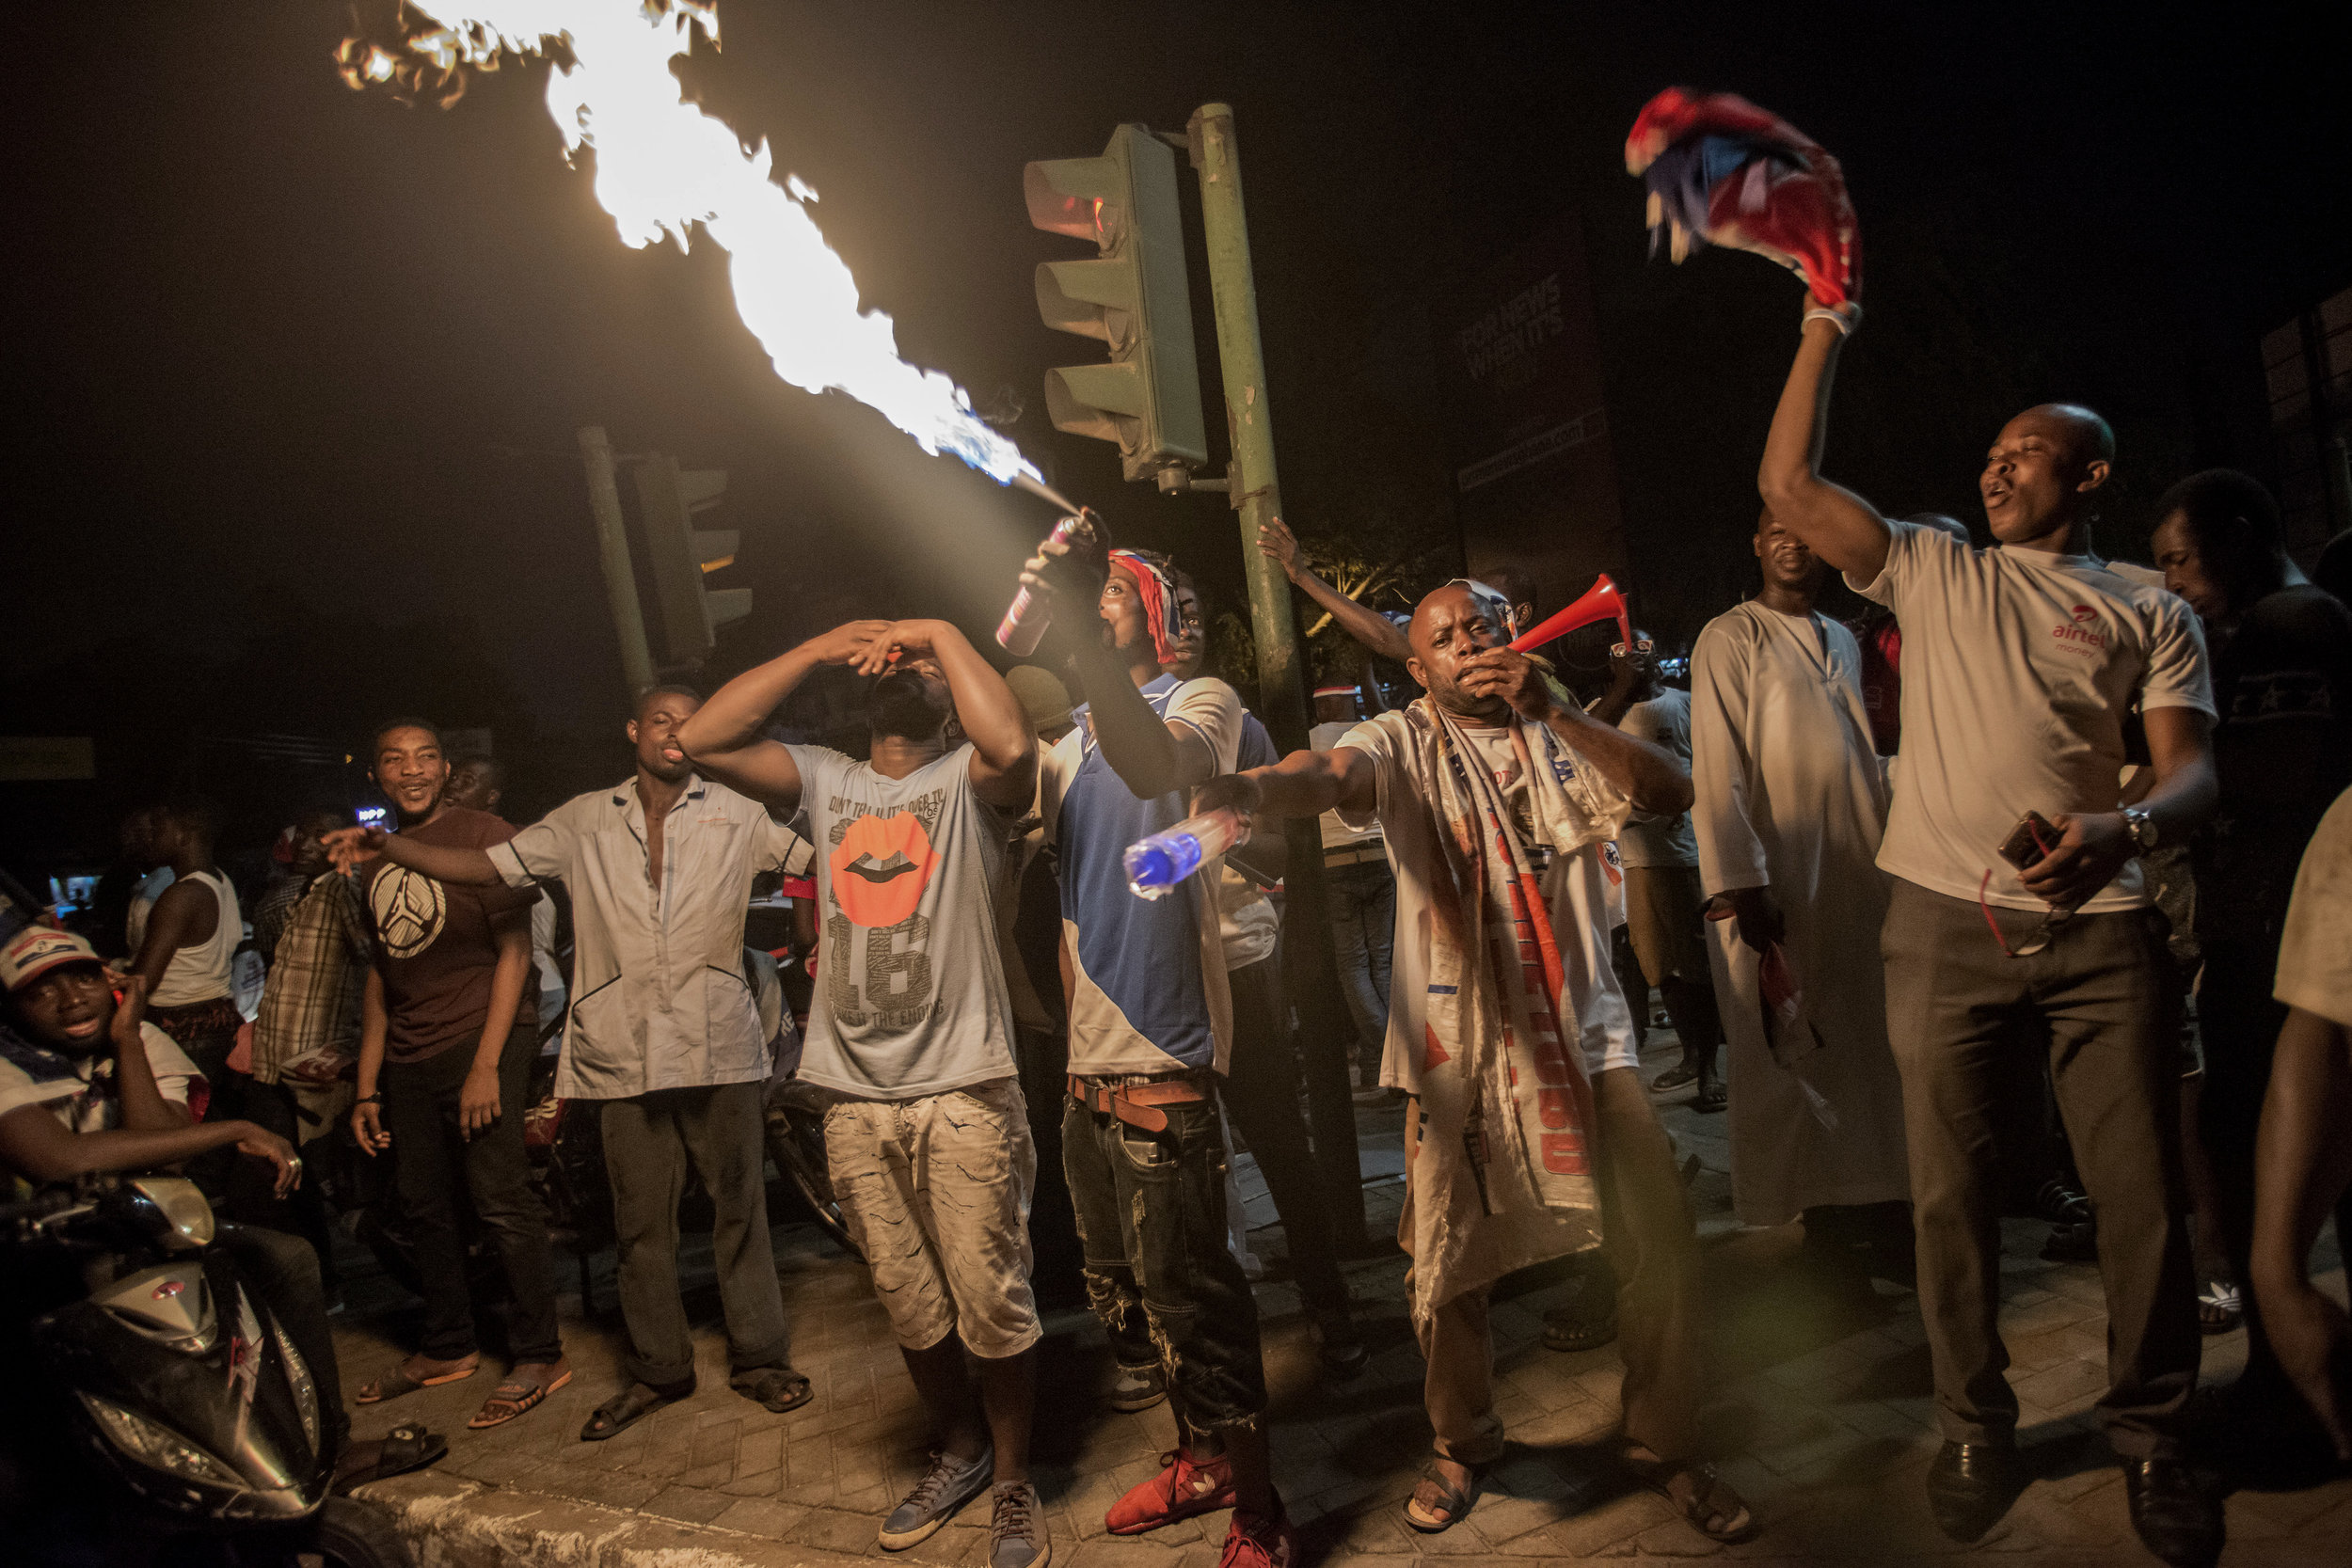 NPP supporters in Accra celebrating Nana Akufo-Addo win on the December 7th General Election in Ghana